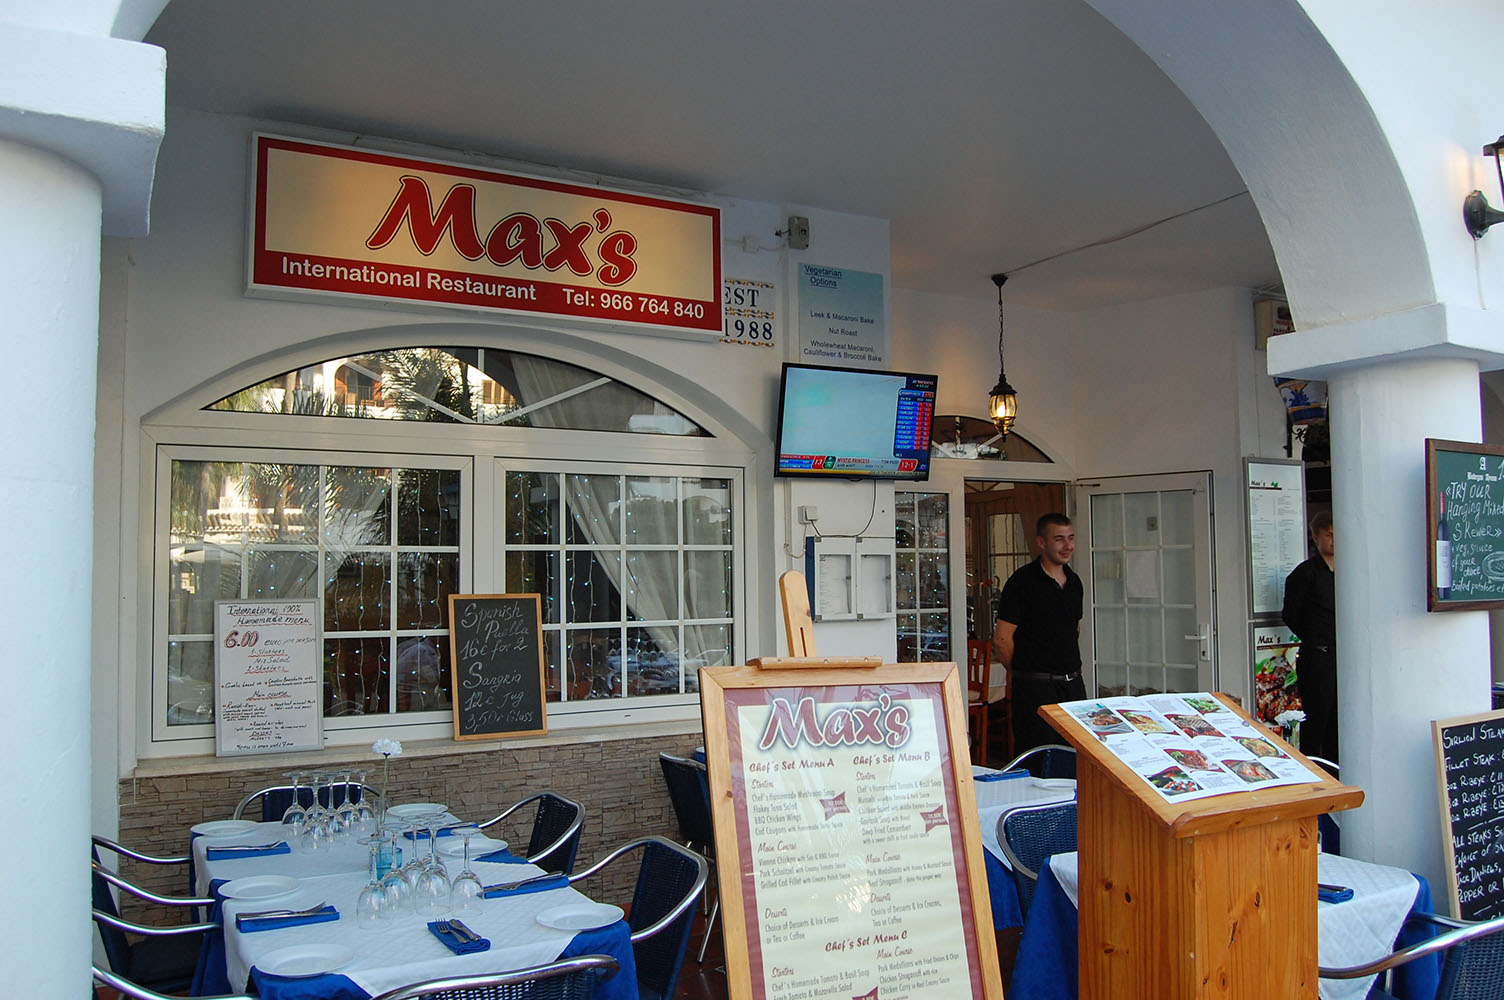 Max's International Restaurant Villamartin Plaza